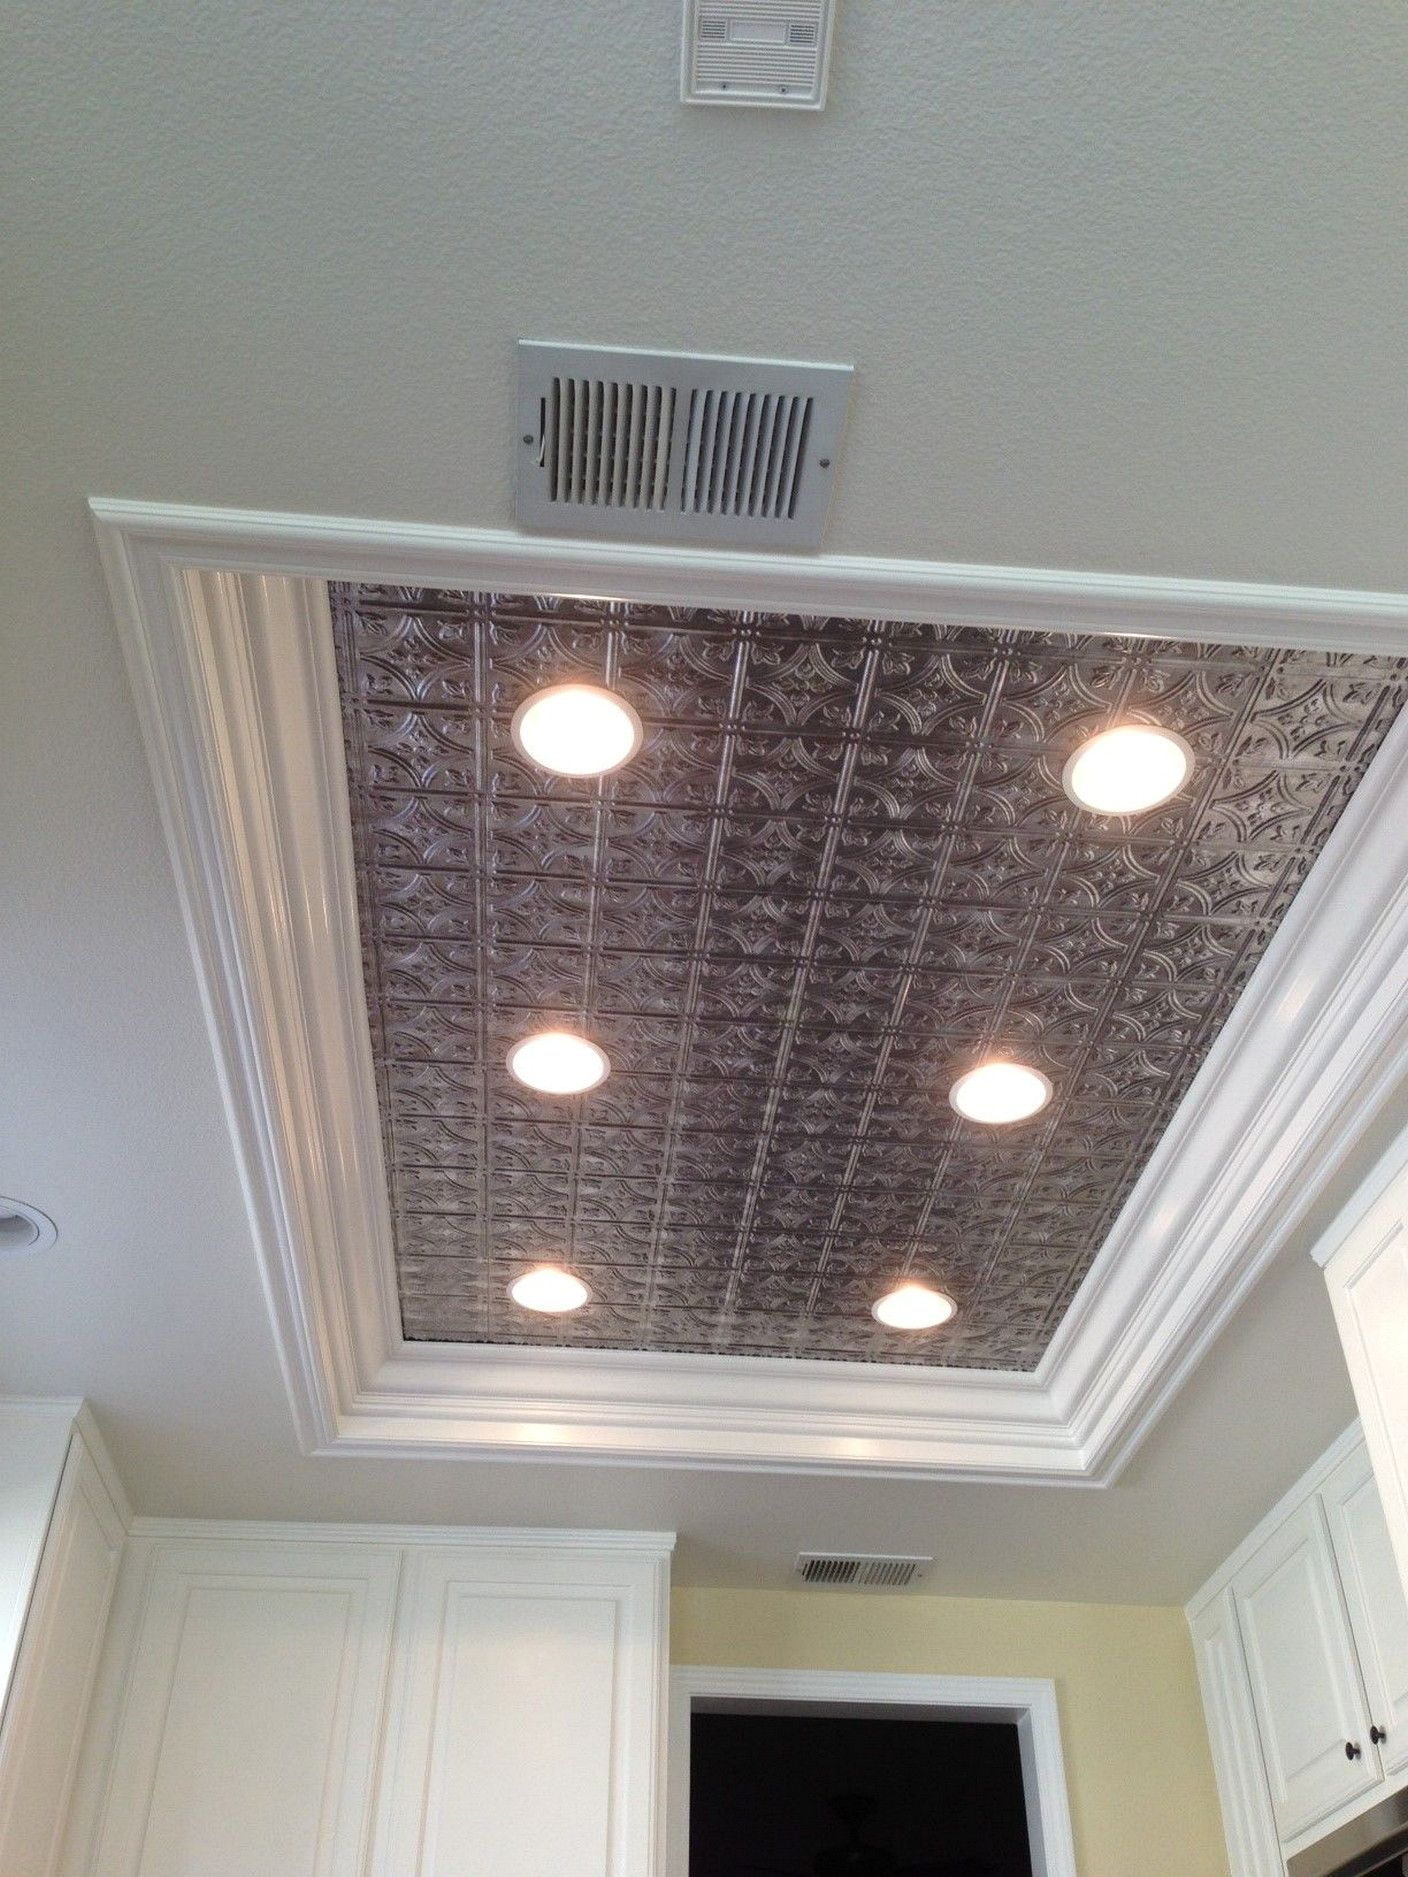 13 Lighting Ideas For The Ceiling Kitchen Ceiling Lights Fluorescent Kitchen Lights Kitchen Lighting Fixtures Ceiling